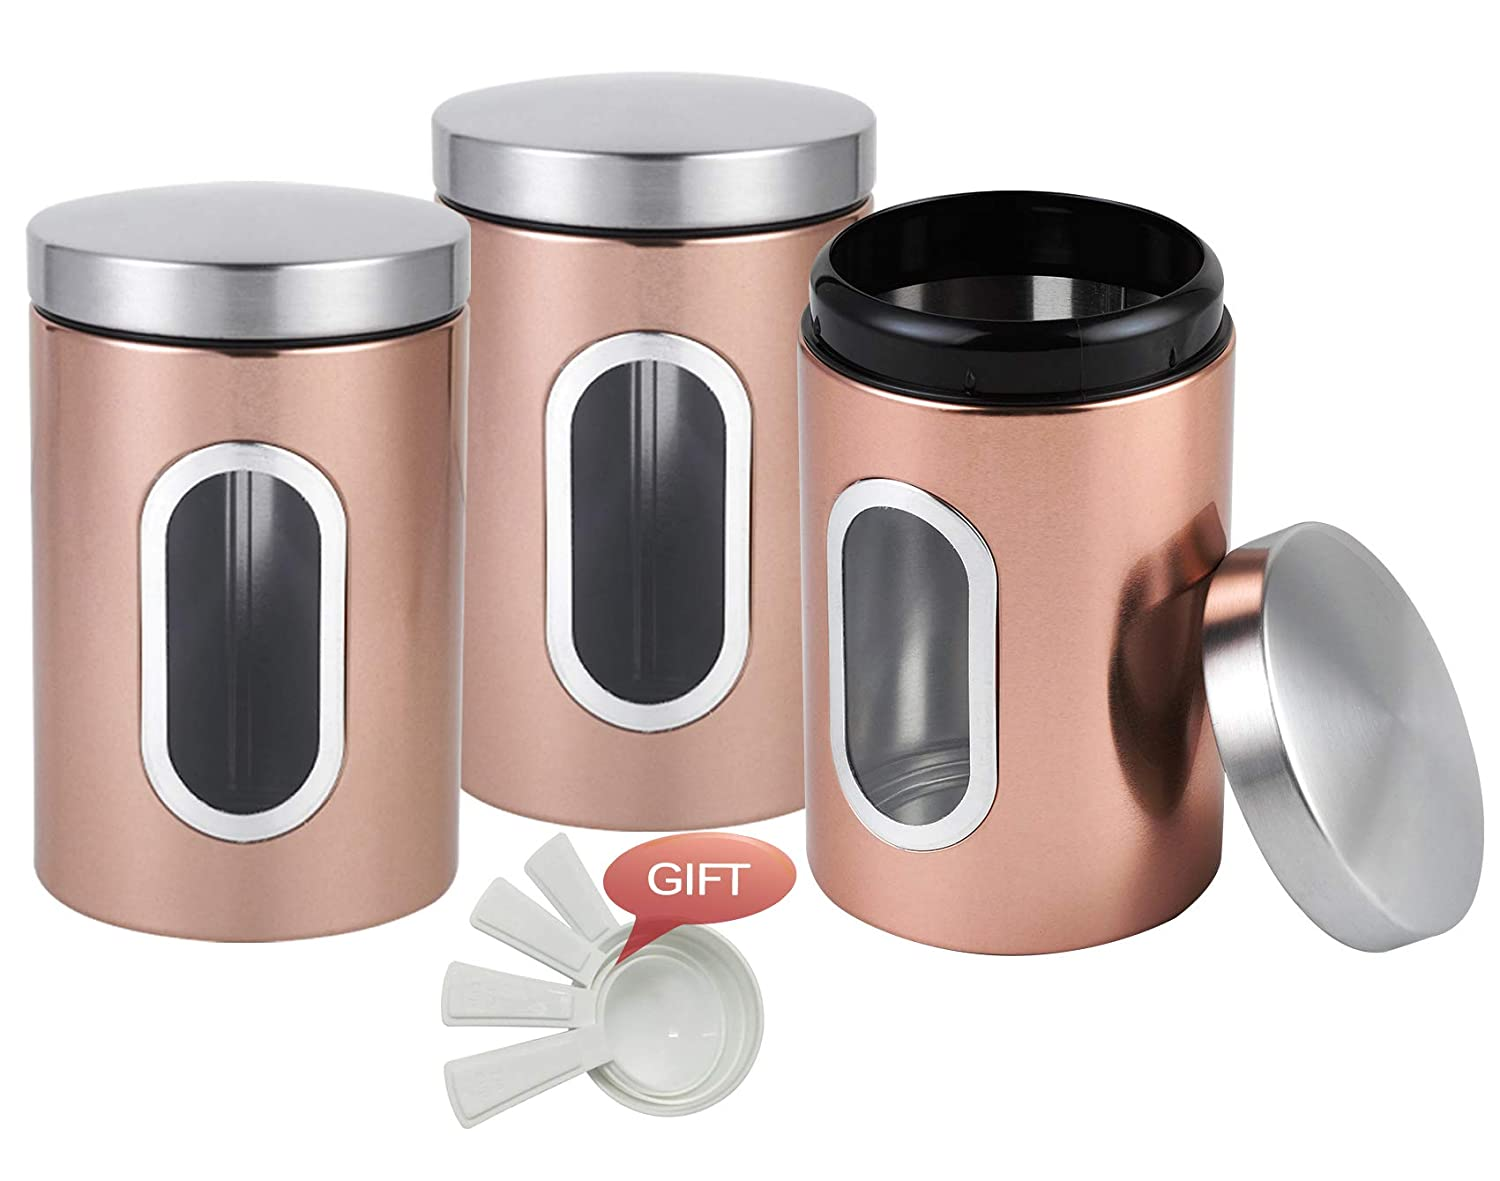 SUNERIC Round Stainless Steel Canister with Window, 3-Piece Set, Rose Gold, with Free Meansuring Cup 4-Piece Set